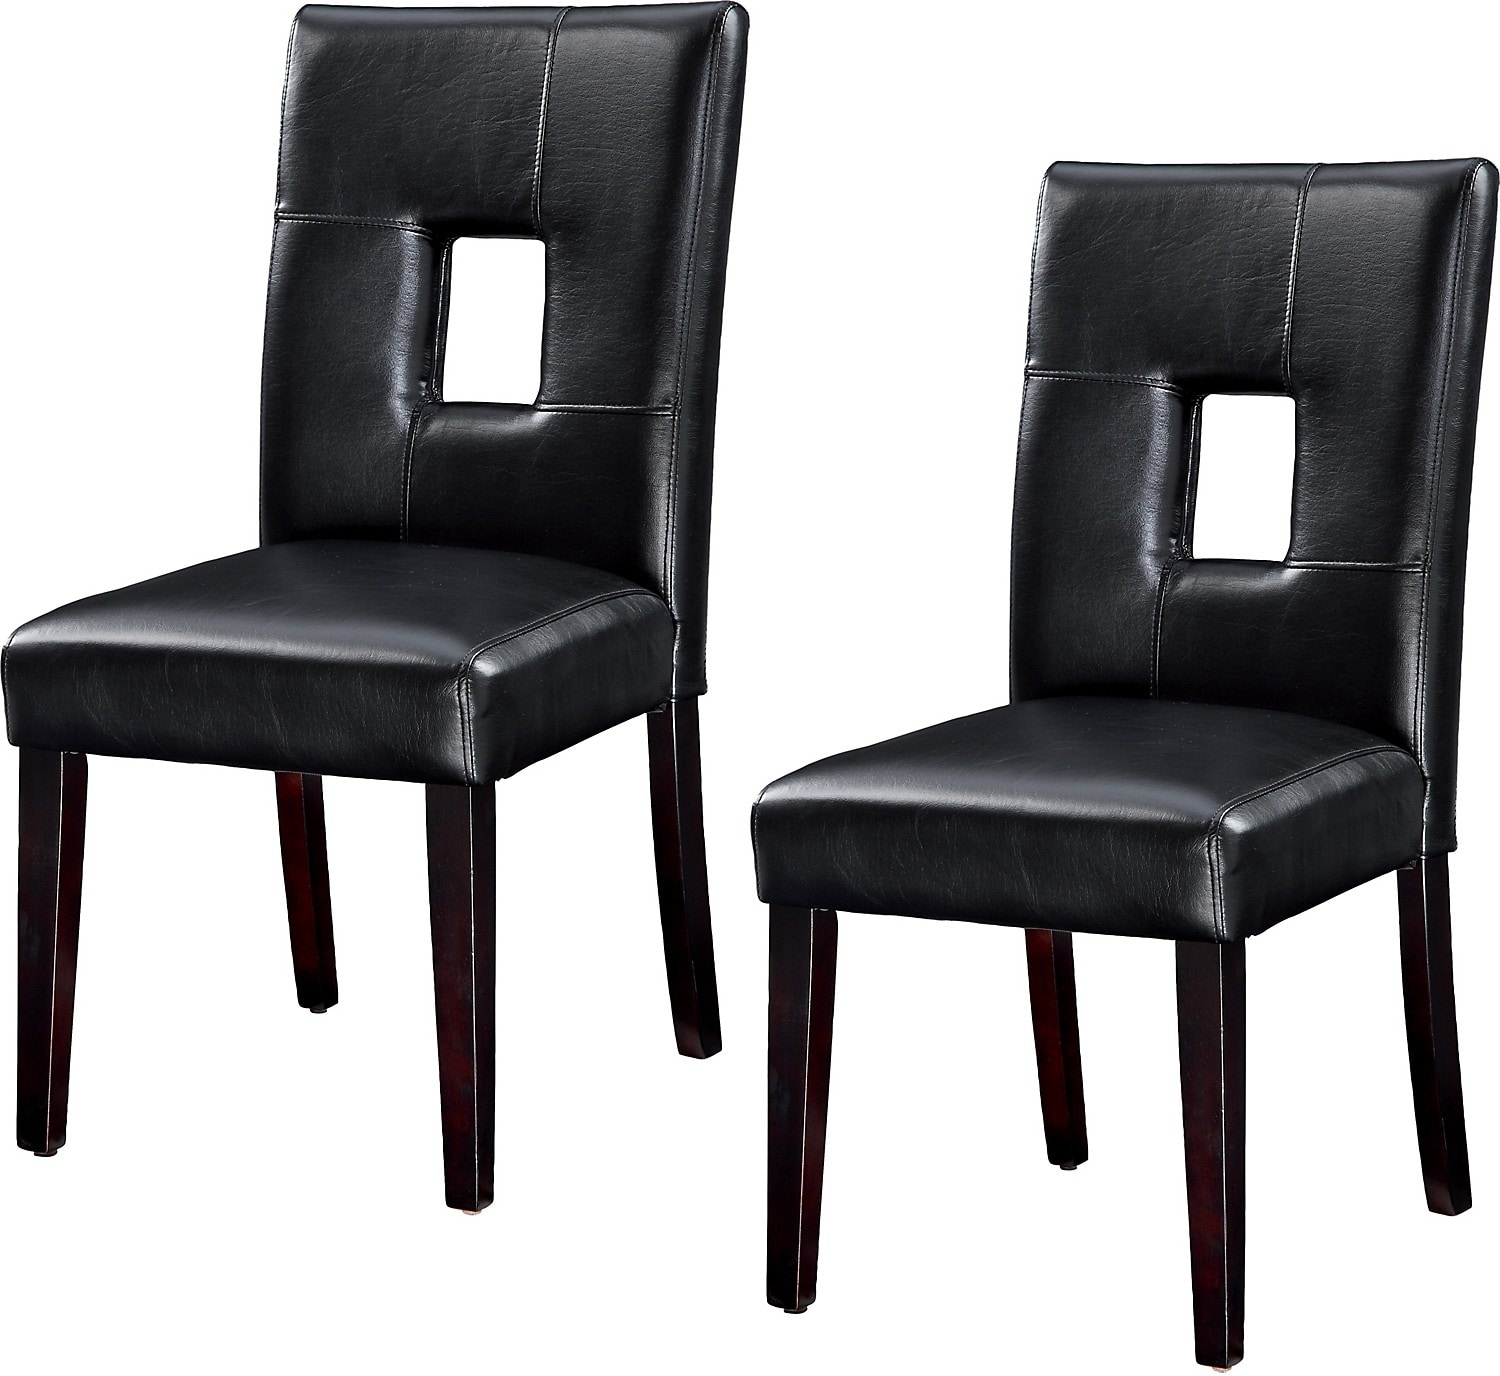 McKena Faux Leather Dining Chair, Set of 2 – Black